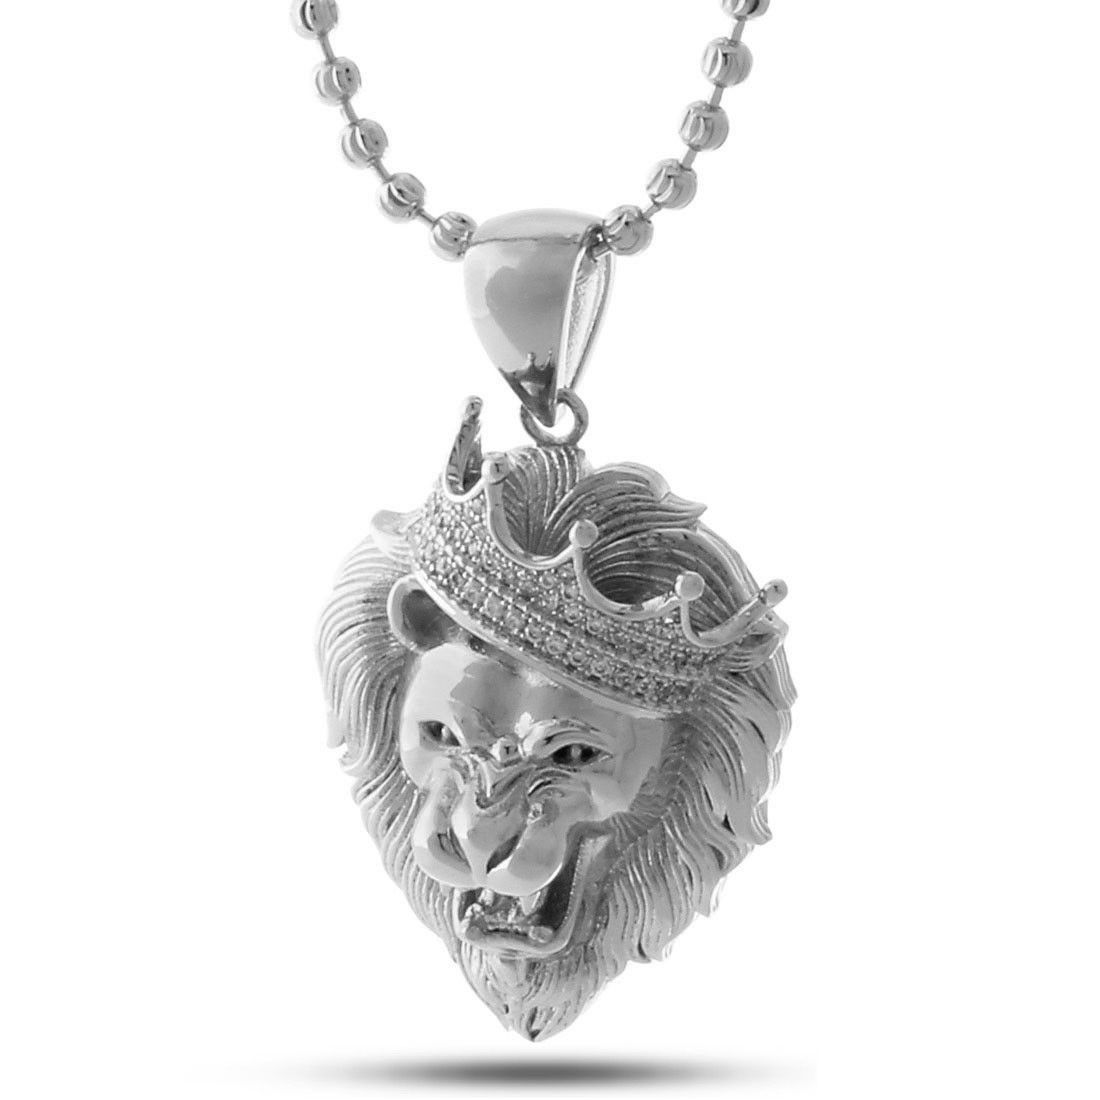 3b761dc7534a7 King Ice Silver Large Roaring Lion CZ Necklace in 2019 | bling ...